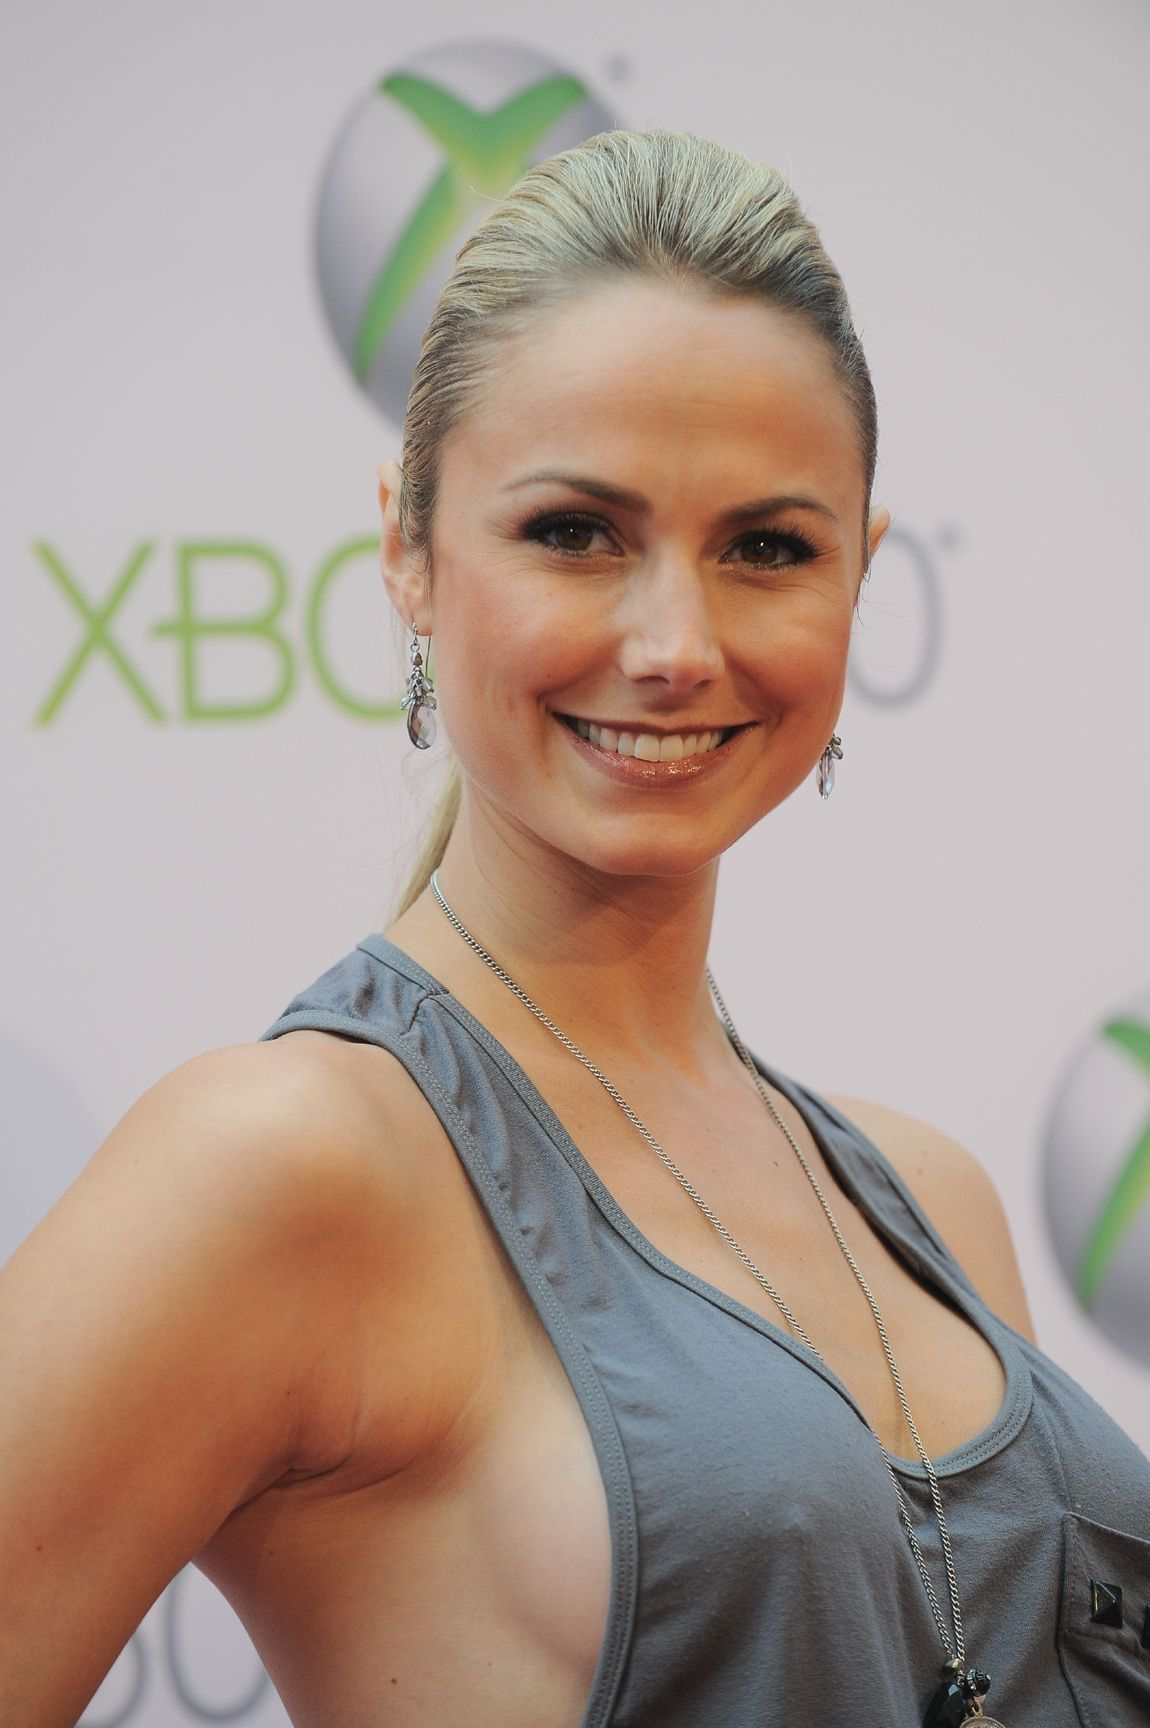 pin kingofkings on stacy keibler pinterest stacy keibler